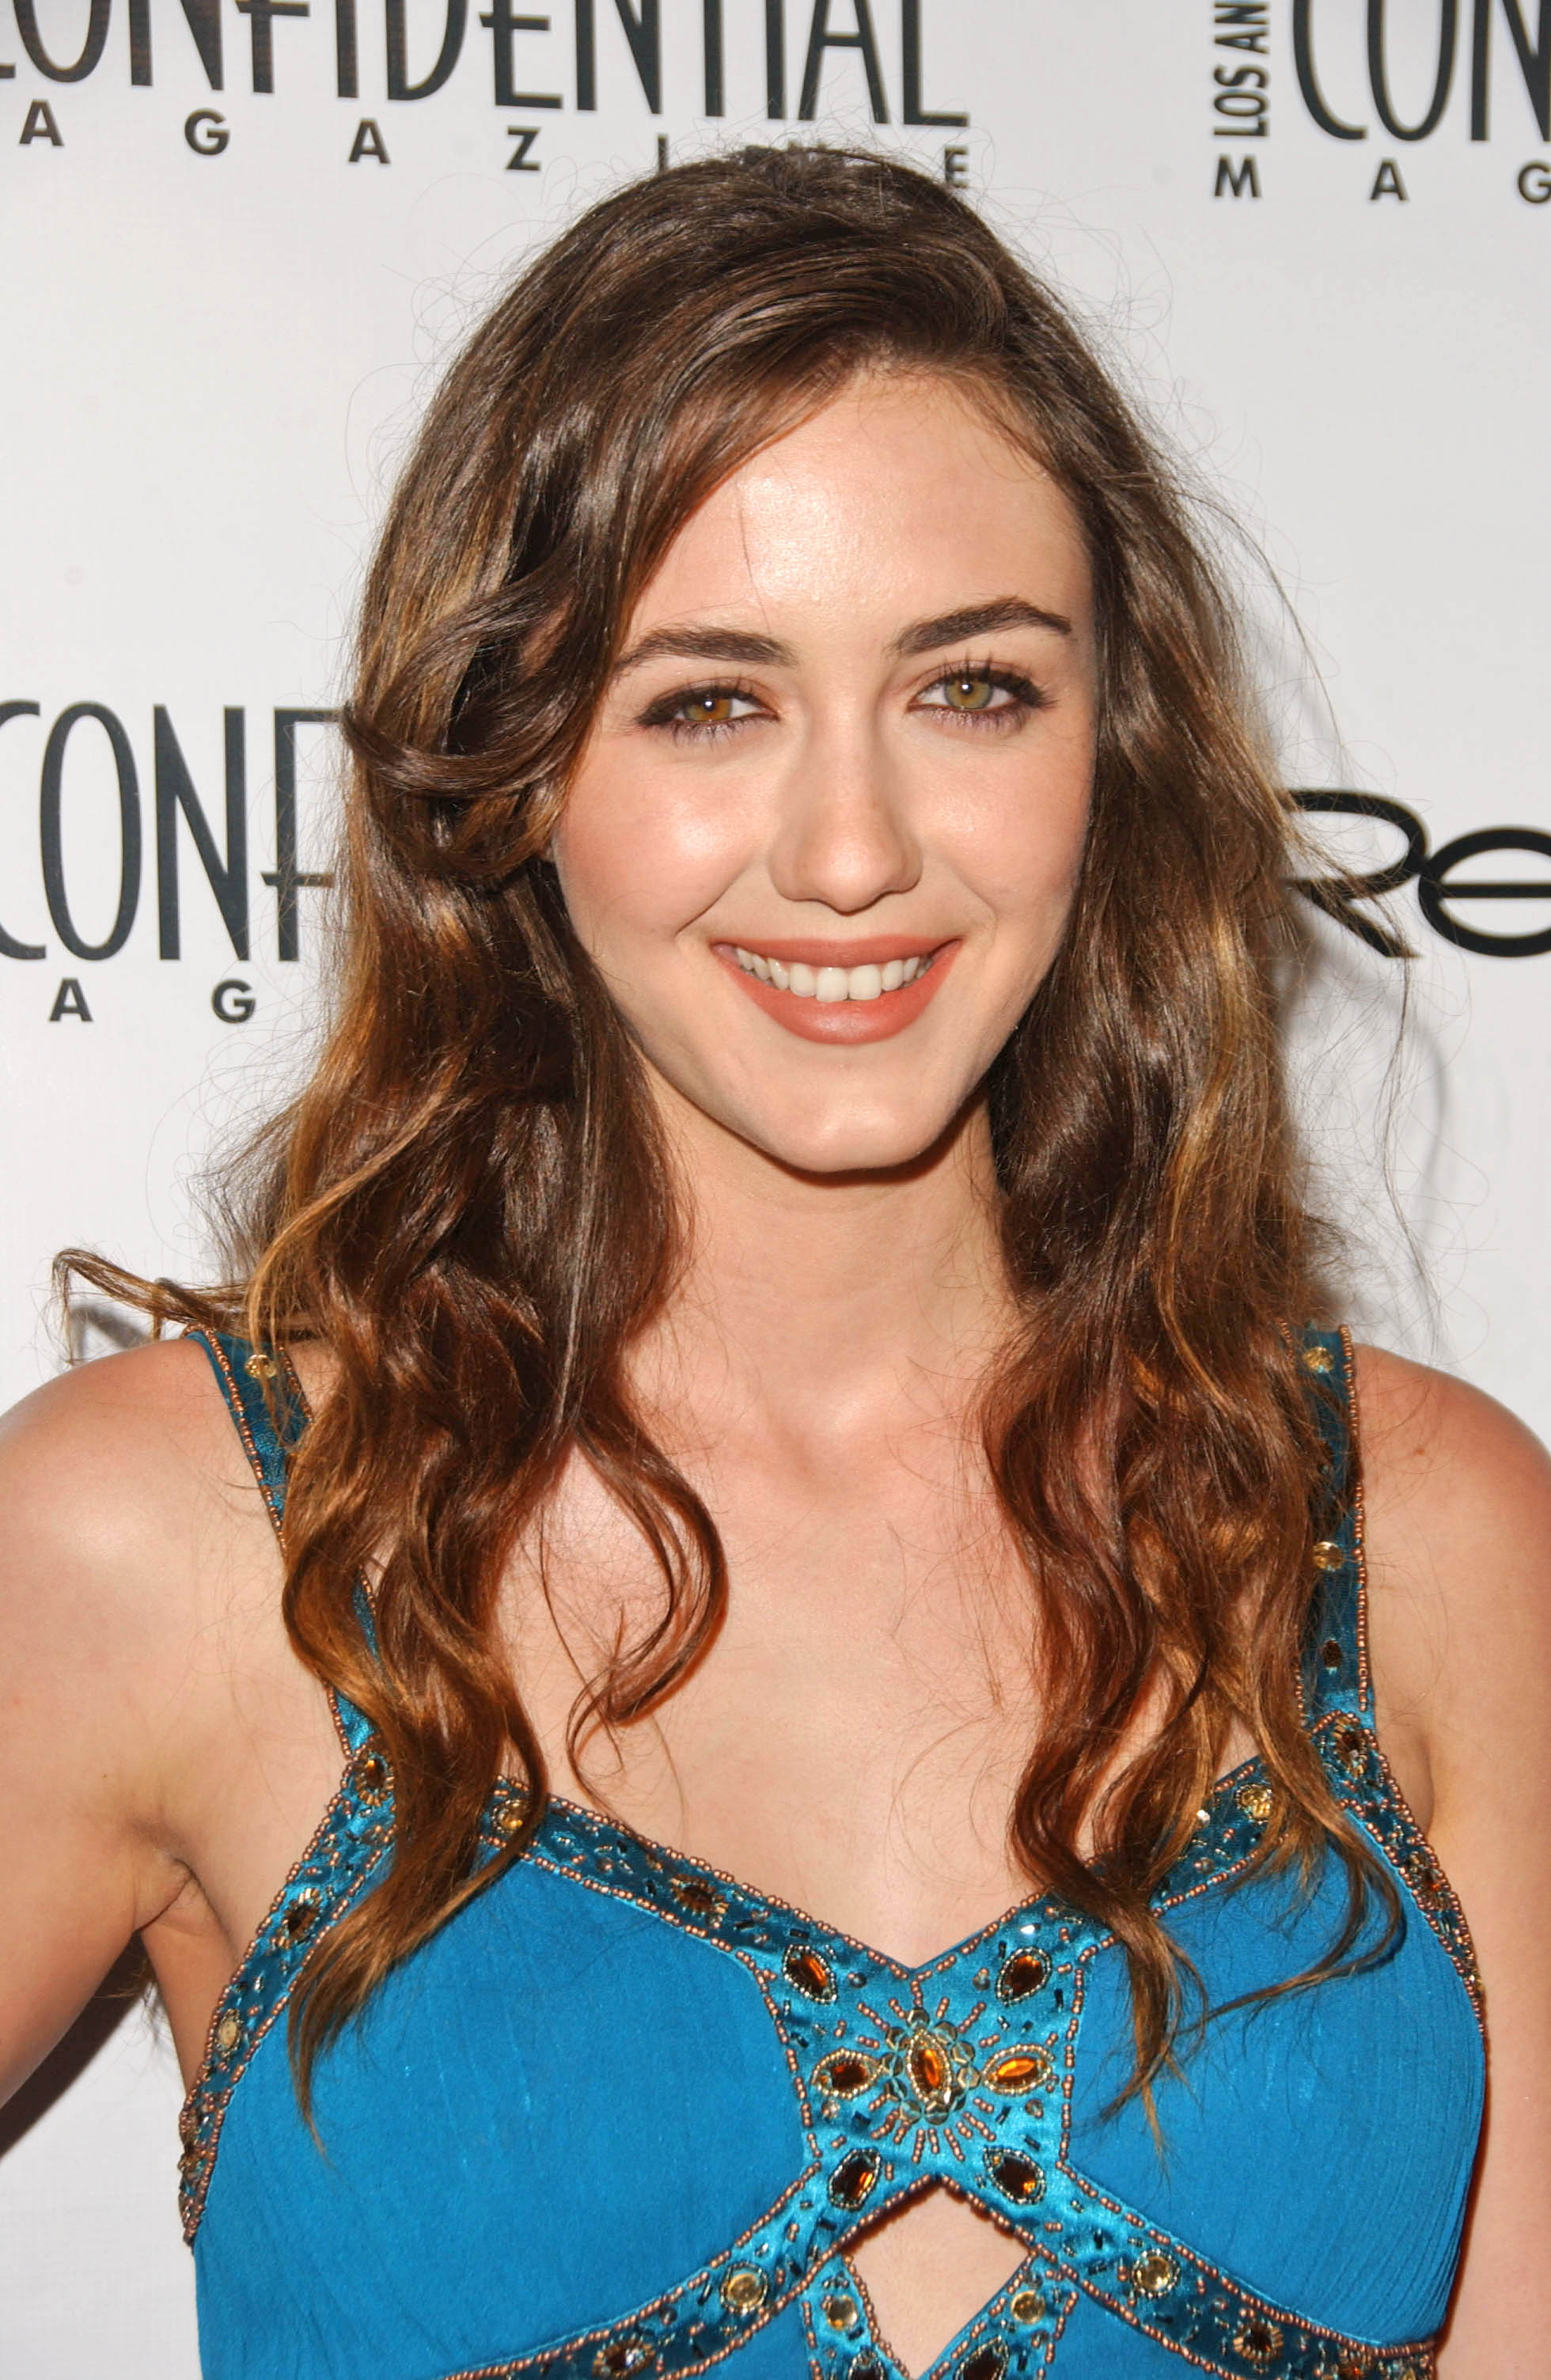 madeline zima photo californication.jpg